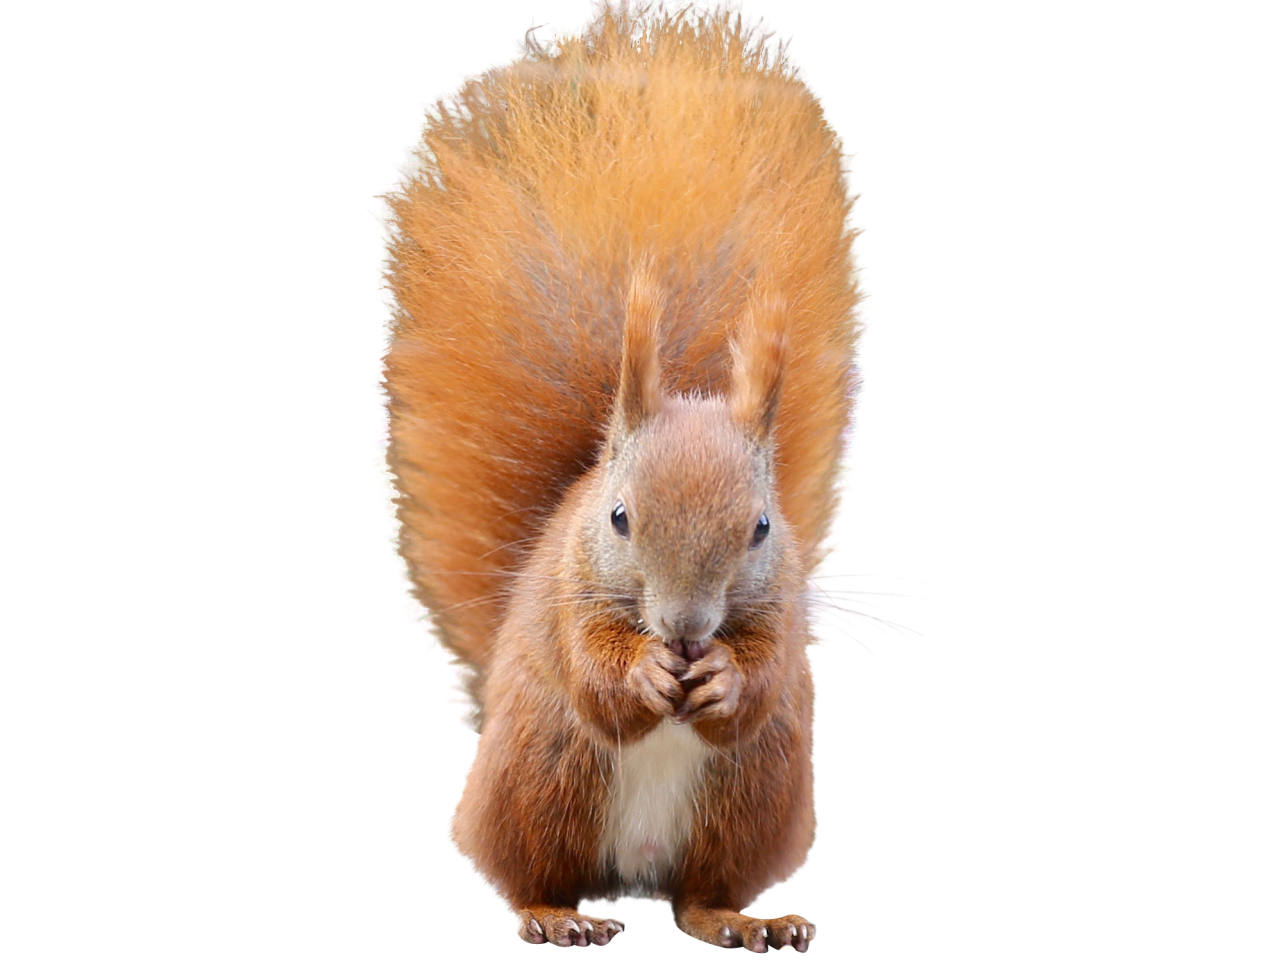 Squirrel PNG Image